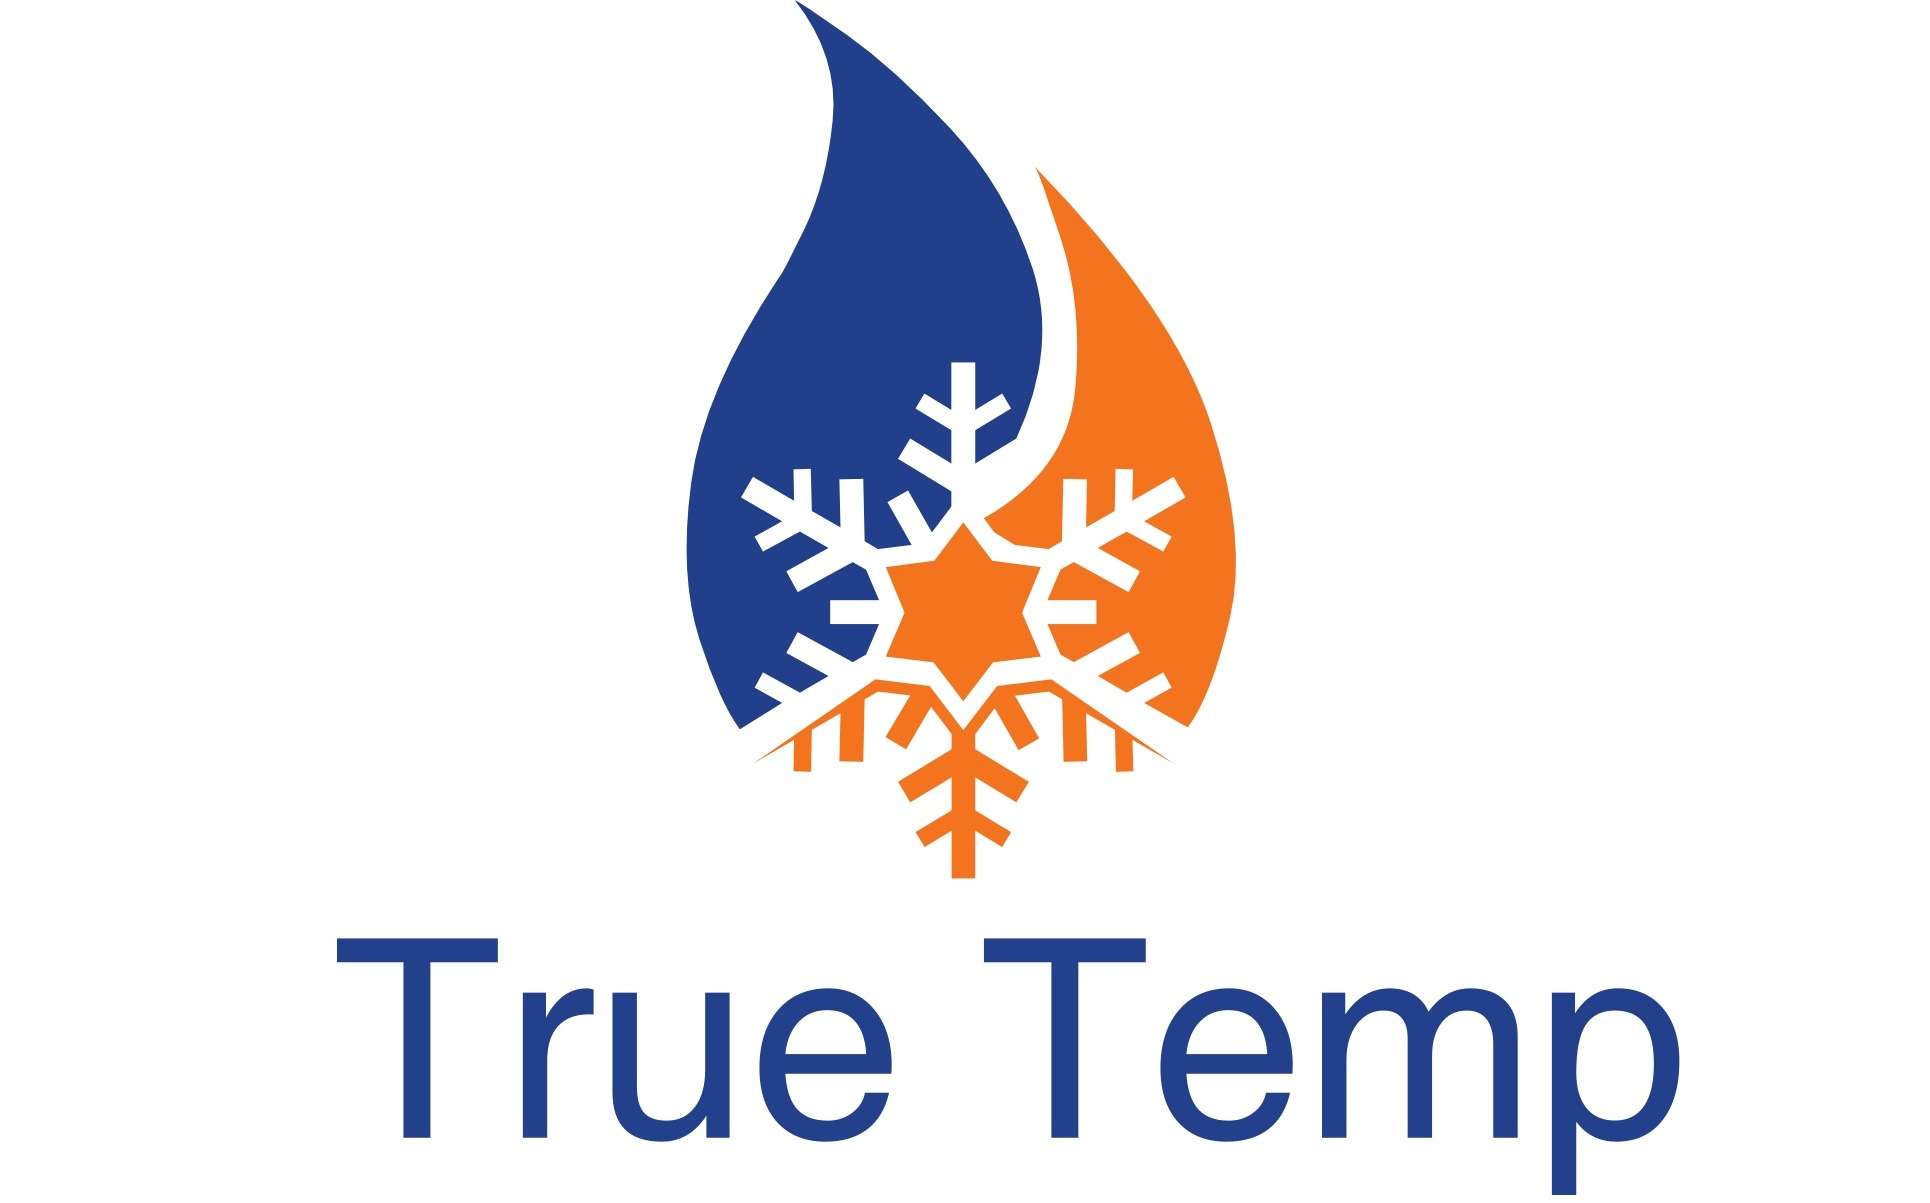 True Temp LLC, a Top AC Repair Company Serving Port St. Lucie, FL and Surrounding Areas Announces New Website